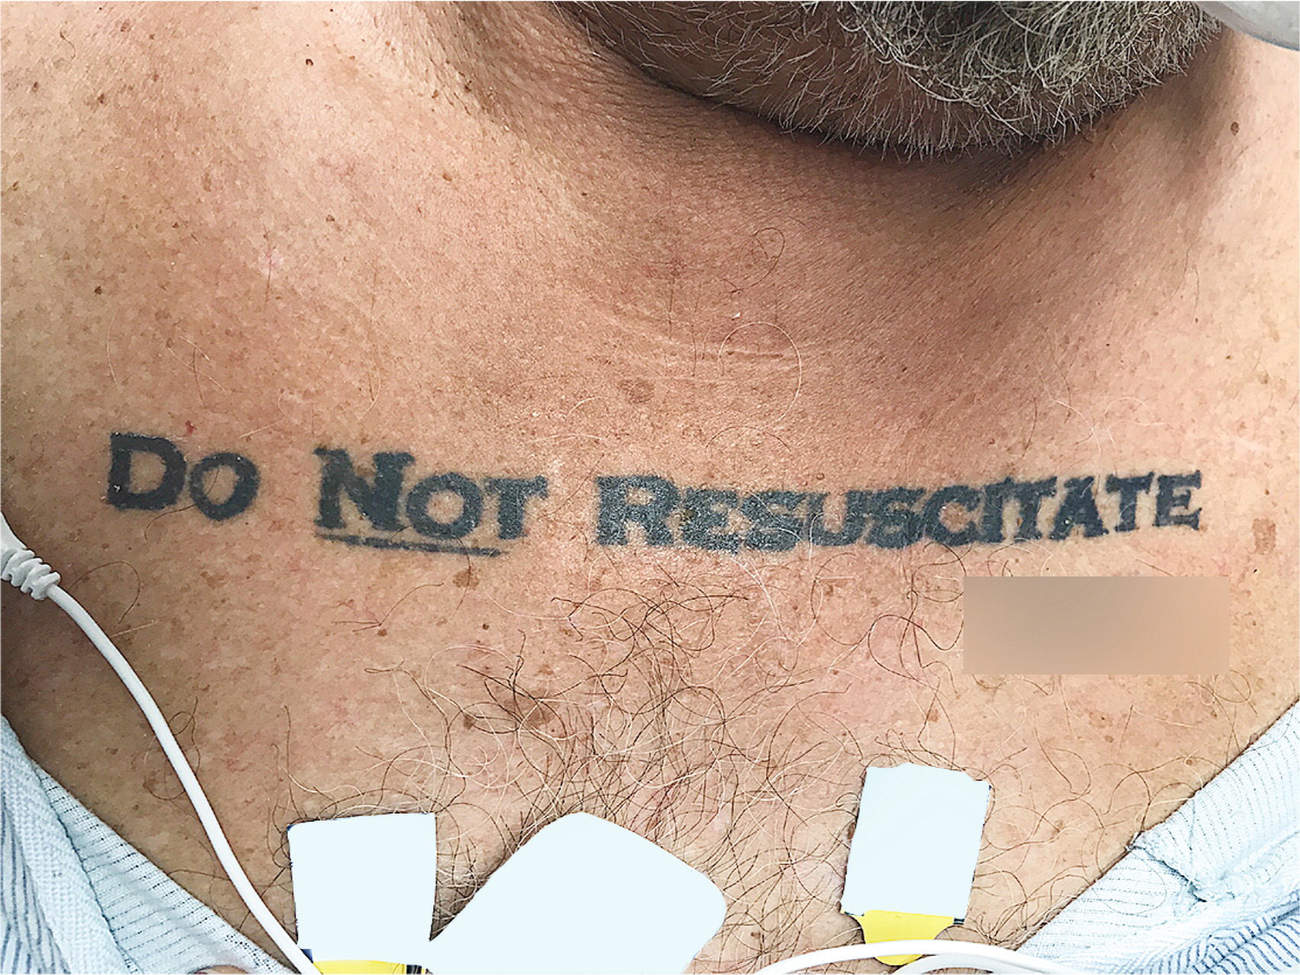 Doctors Unsure if They Should Save Patient with 'Do Not Resuscitate' Tattoo